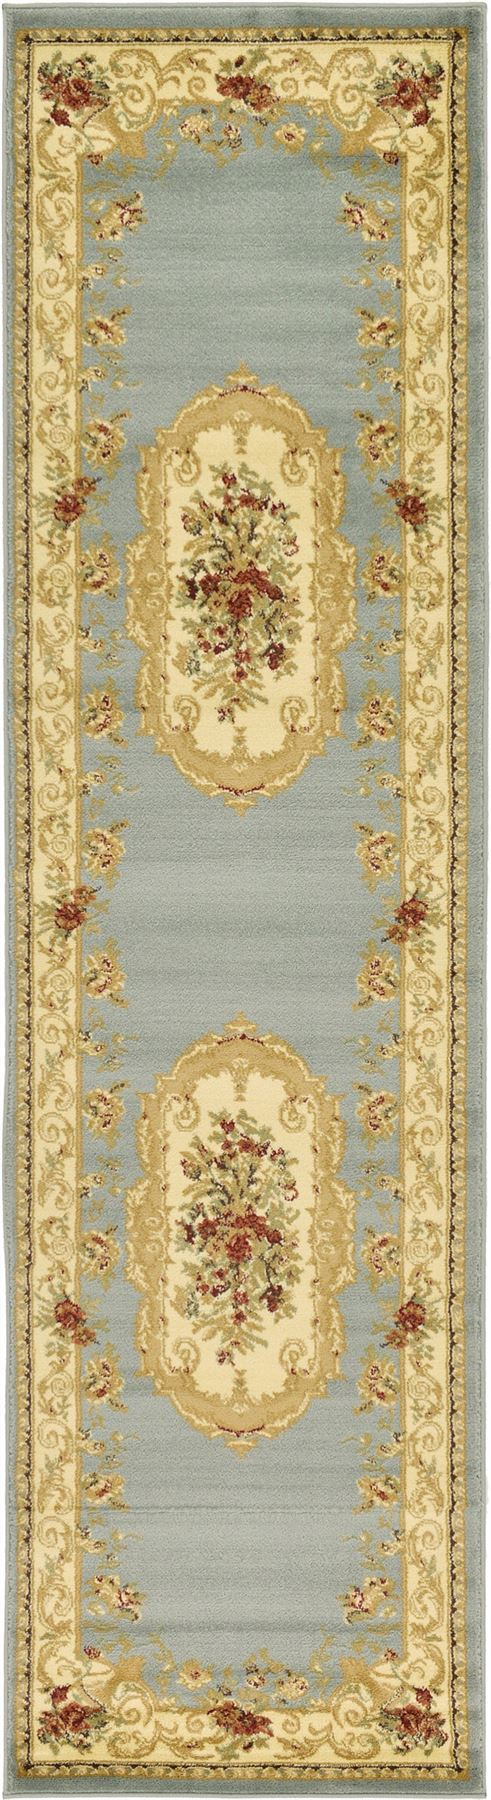 Oriental-Large-Area-Rug-Square-Traditional-Country-Round-Carpet-Medallion-Small thumbnail 38